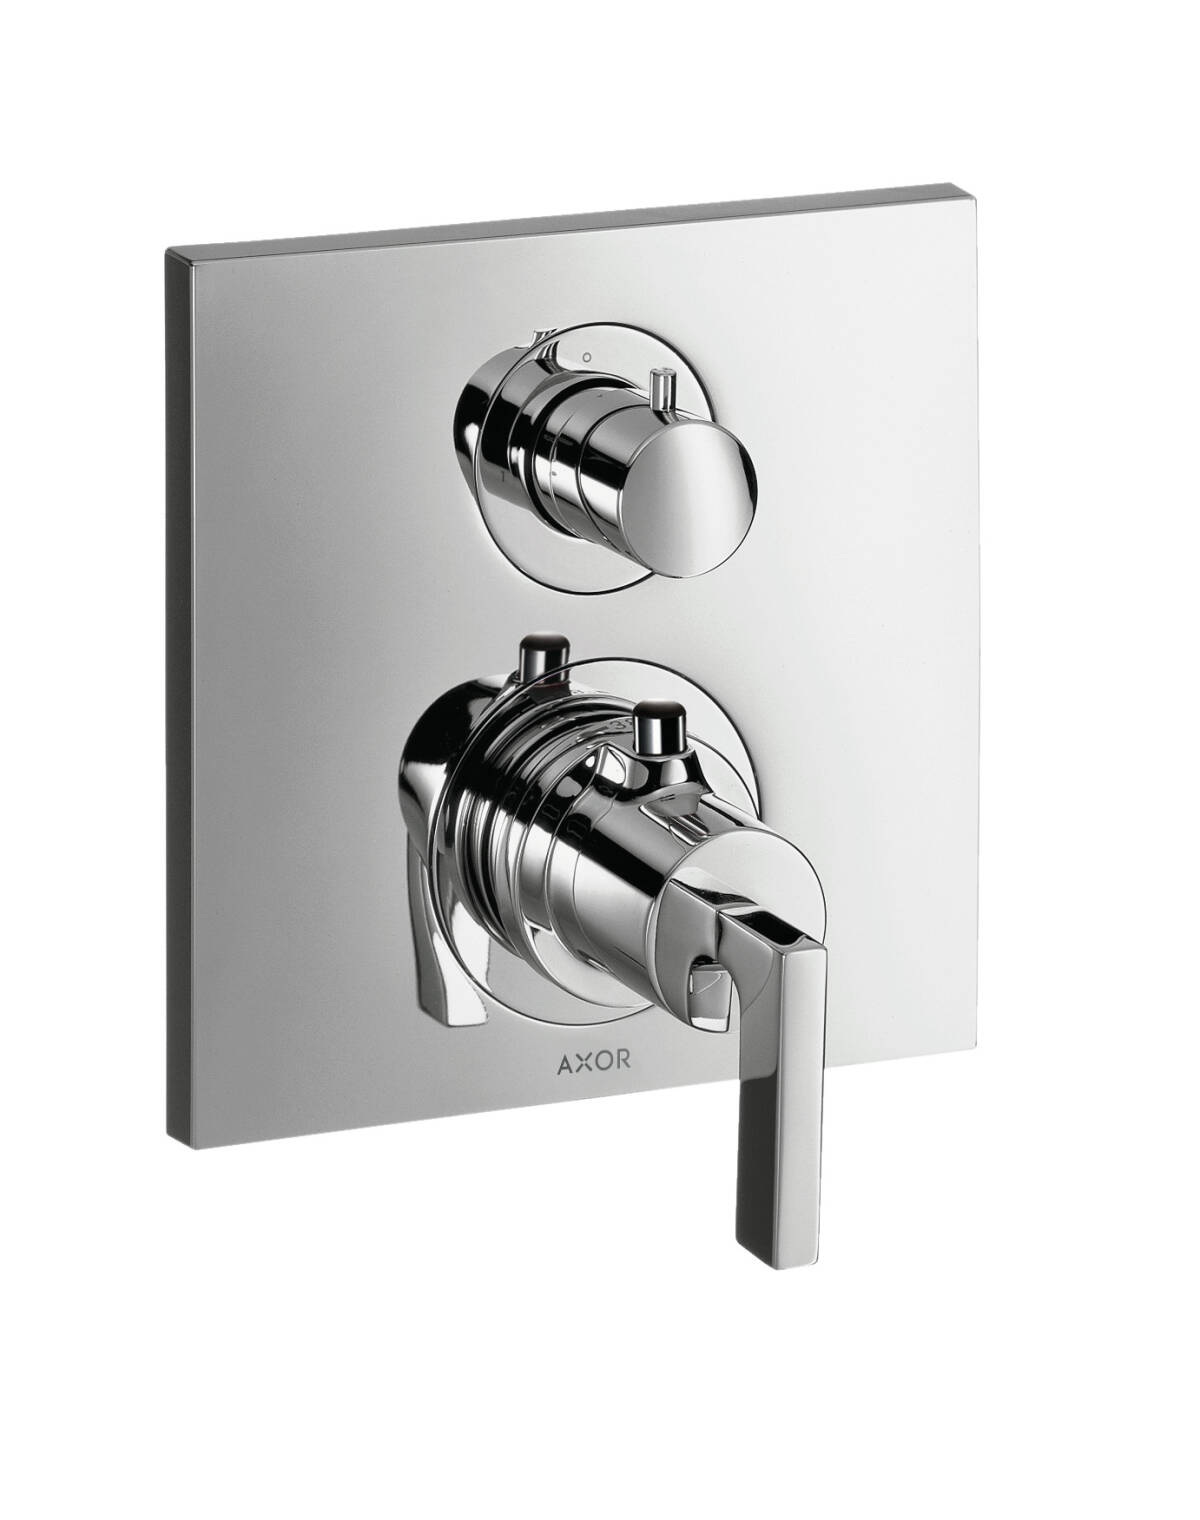 Thermostat for concealed installation with shut-off valve and lever handle, Chrome, 39700000